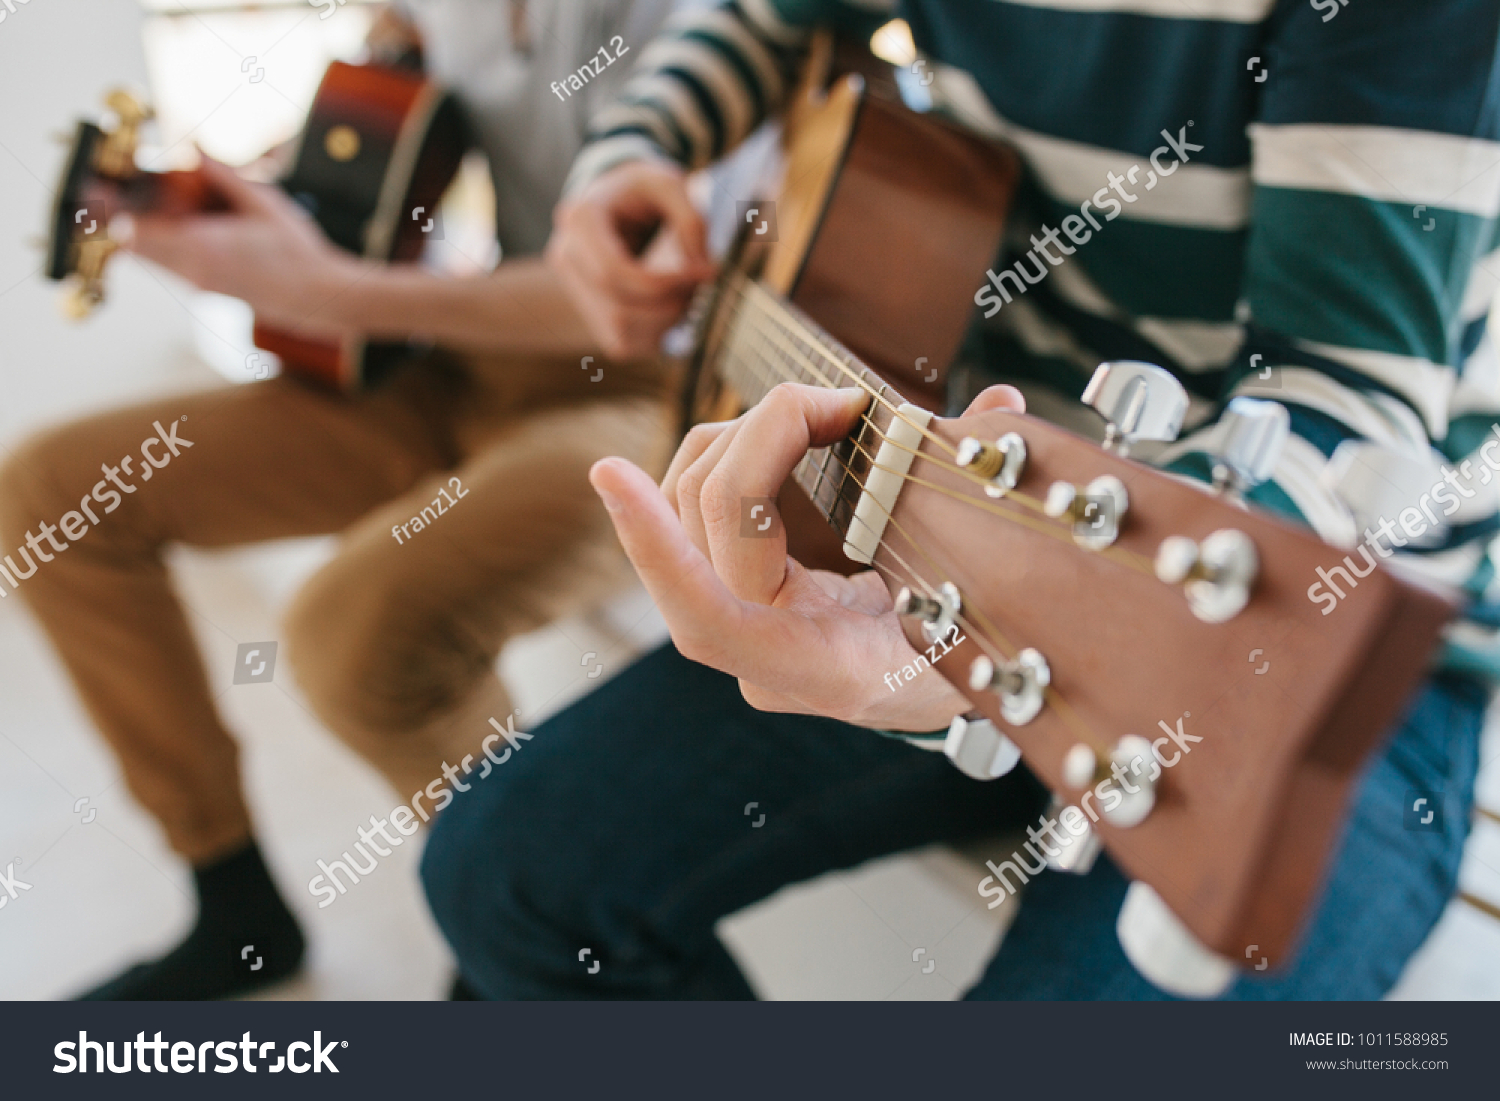 Learning to play the guitar. Music education and extracurricular lessons. Hobbies and enthusiasm for playing guitar and singing songs. #1011588985